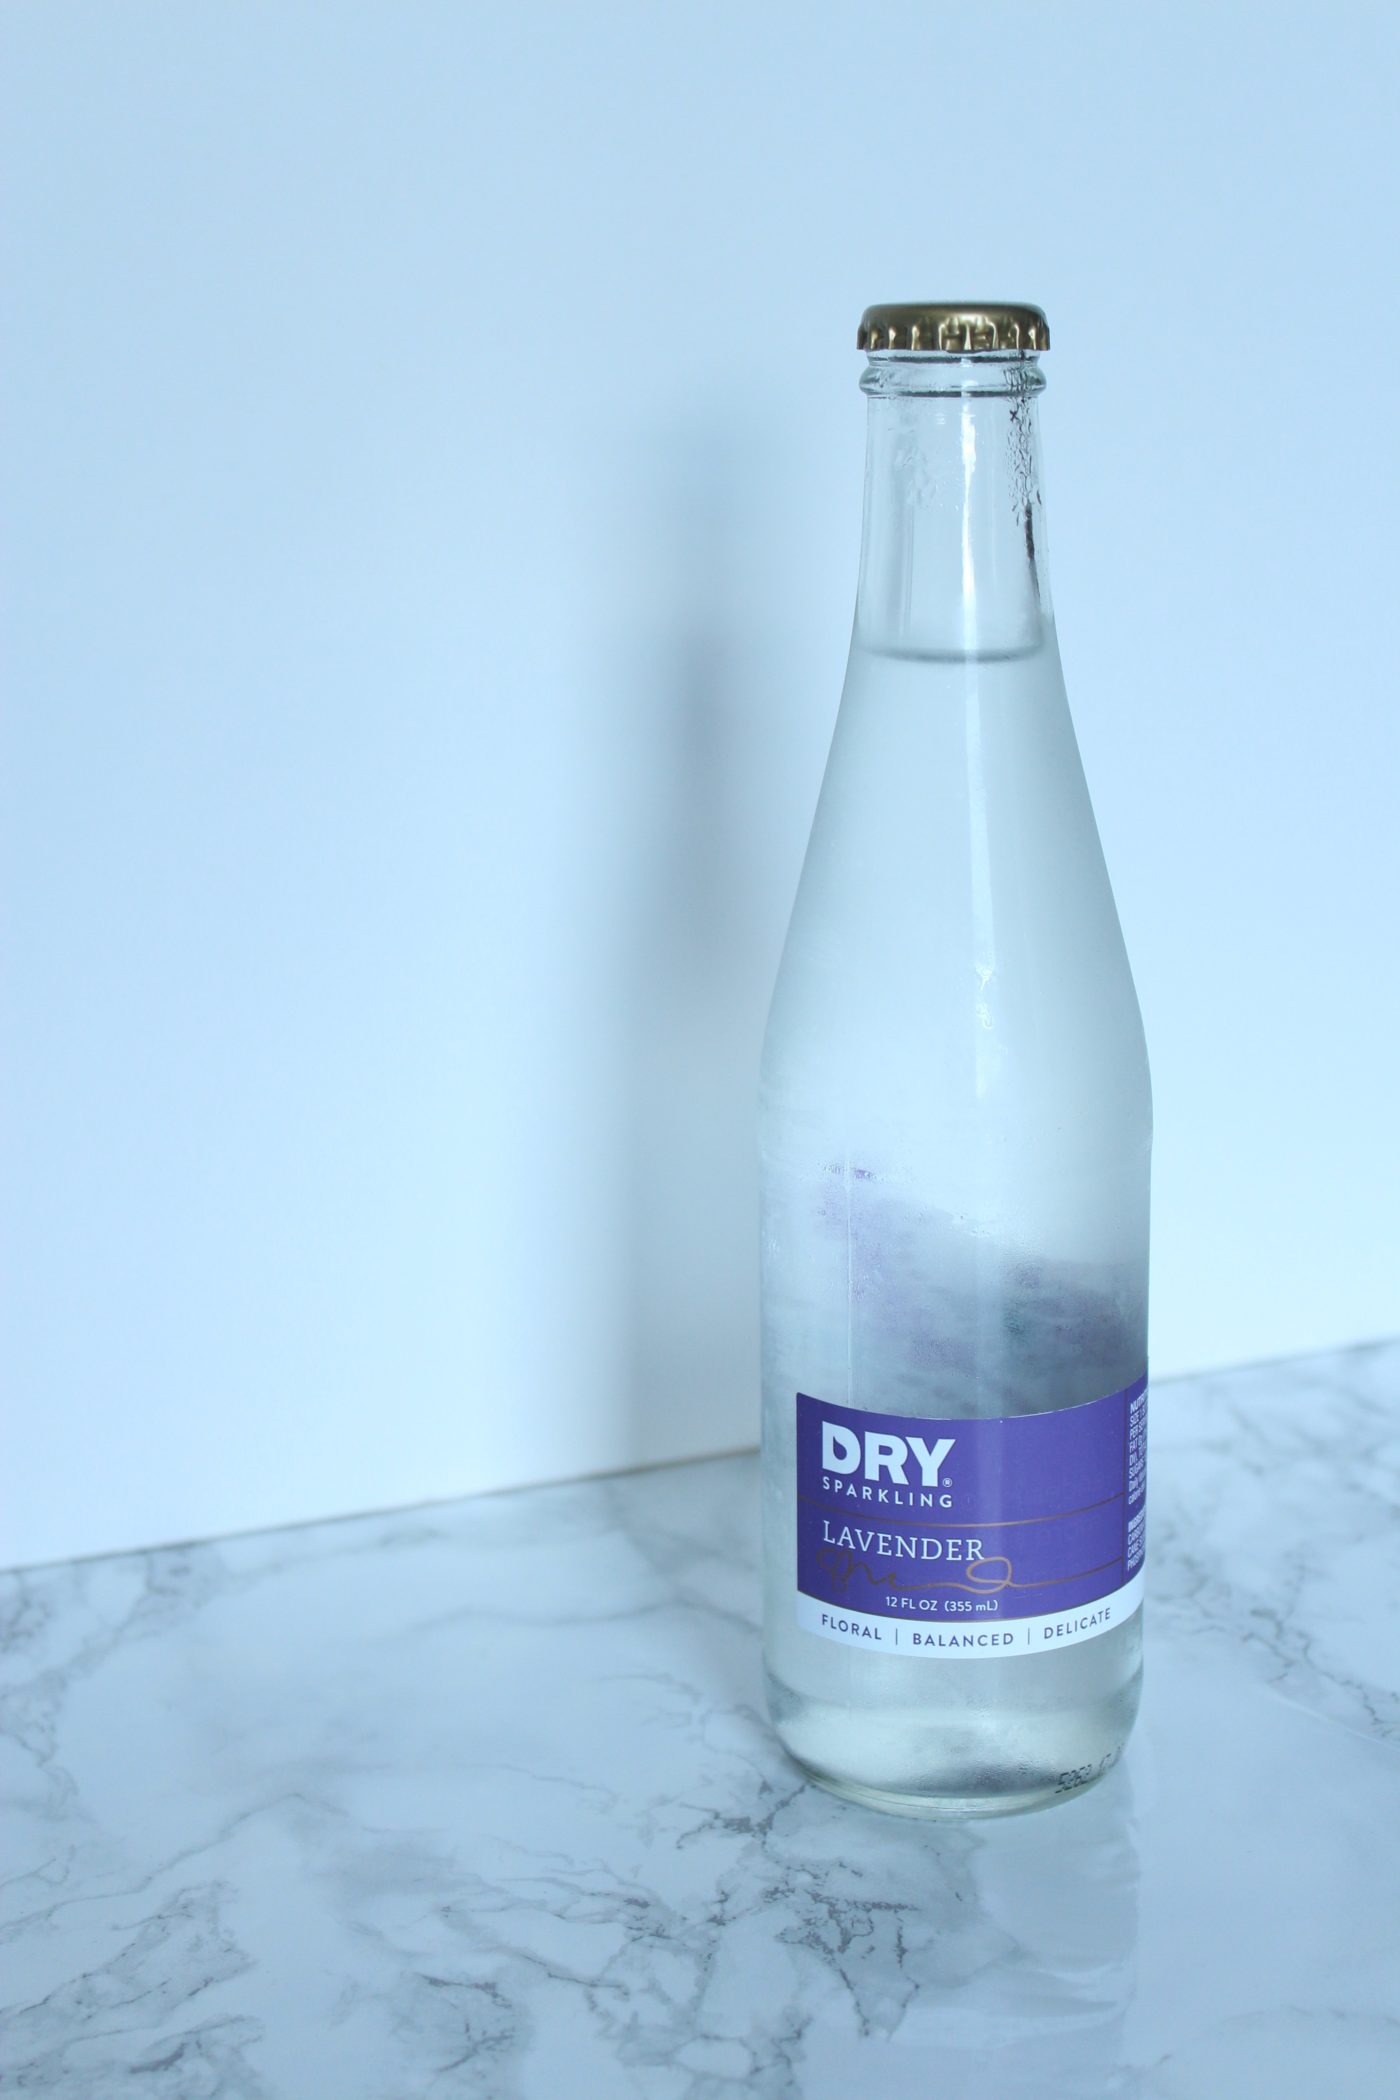 Dry Sparkling sodas are great on their own and even better in an adult beverage.